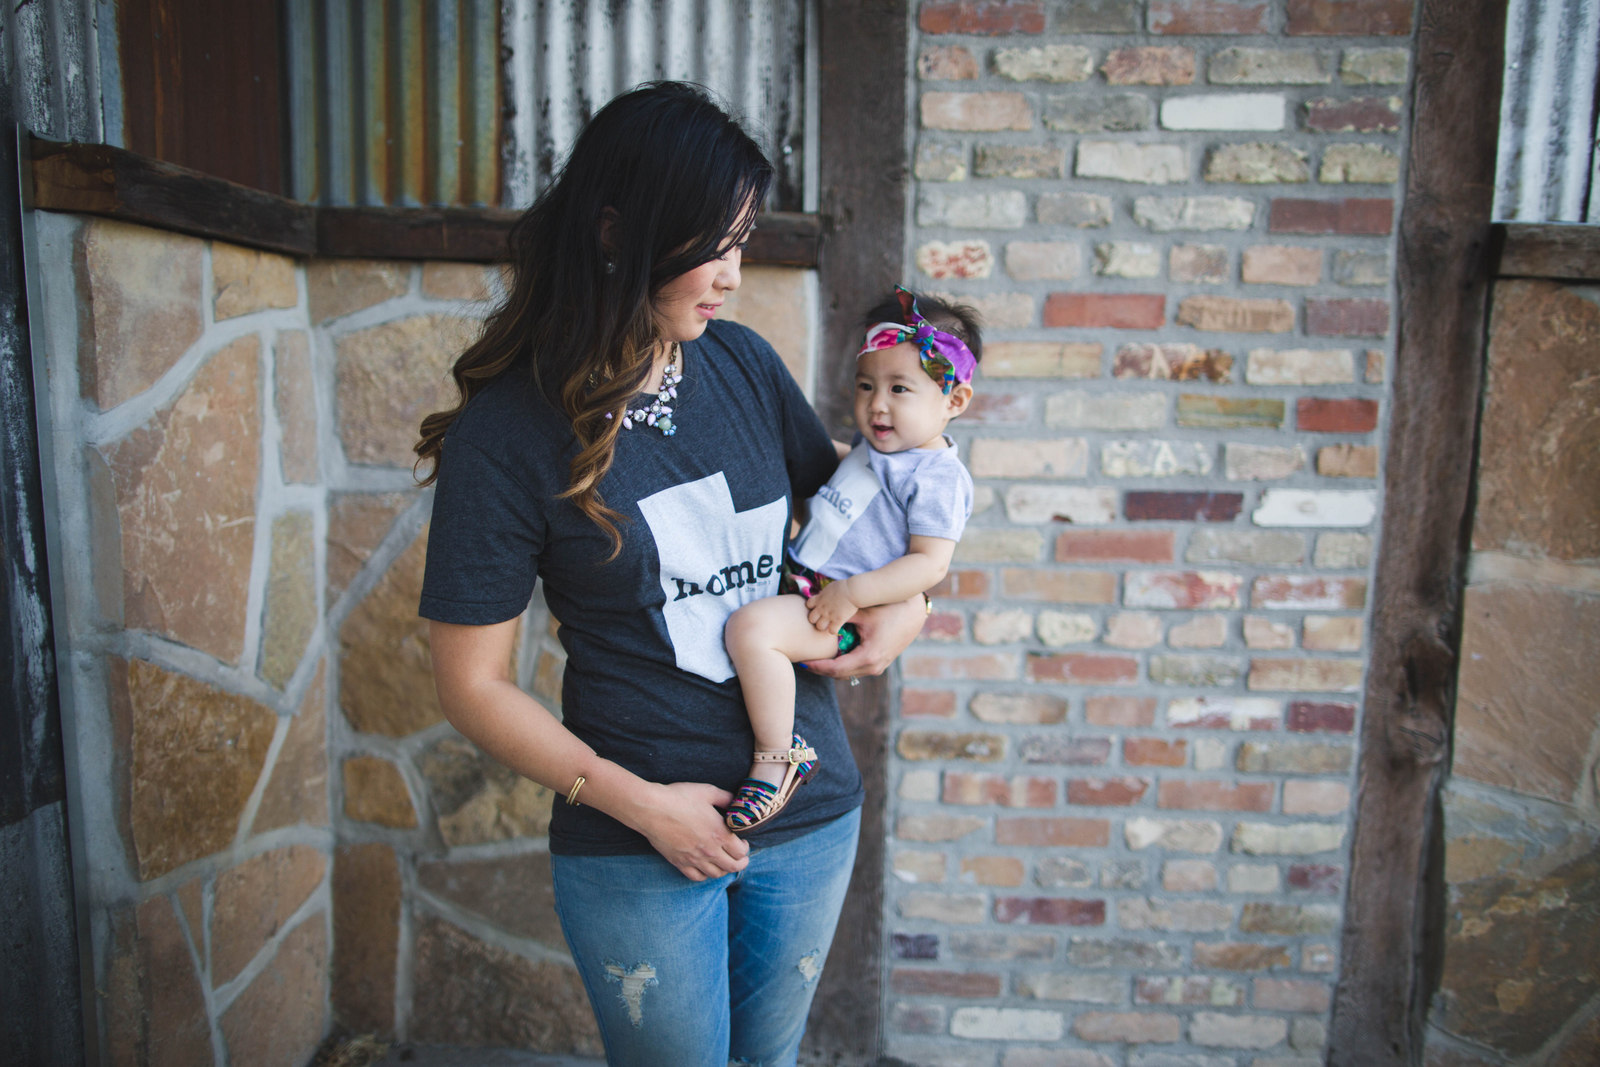 Mommy and me wearing Home tees